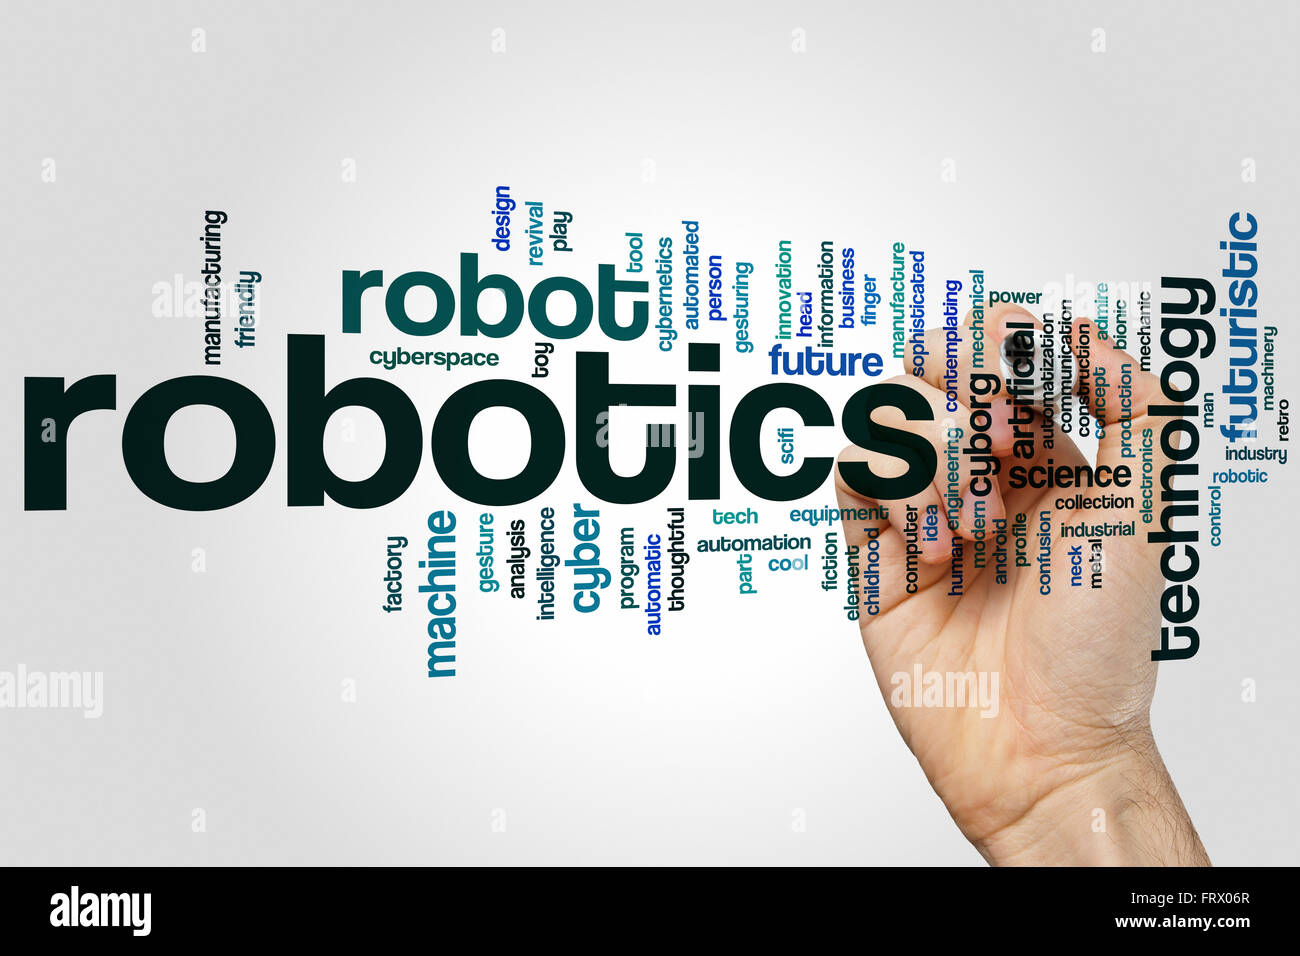 Robotics Word Cloud Concept Stock Photo 100759871 Alamy